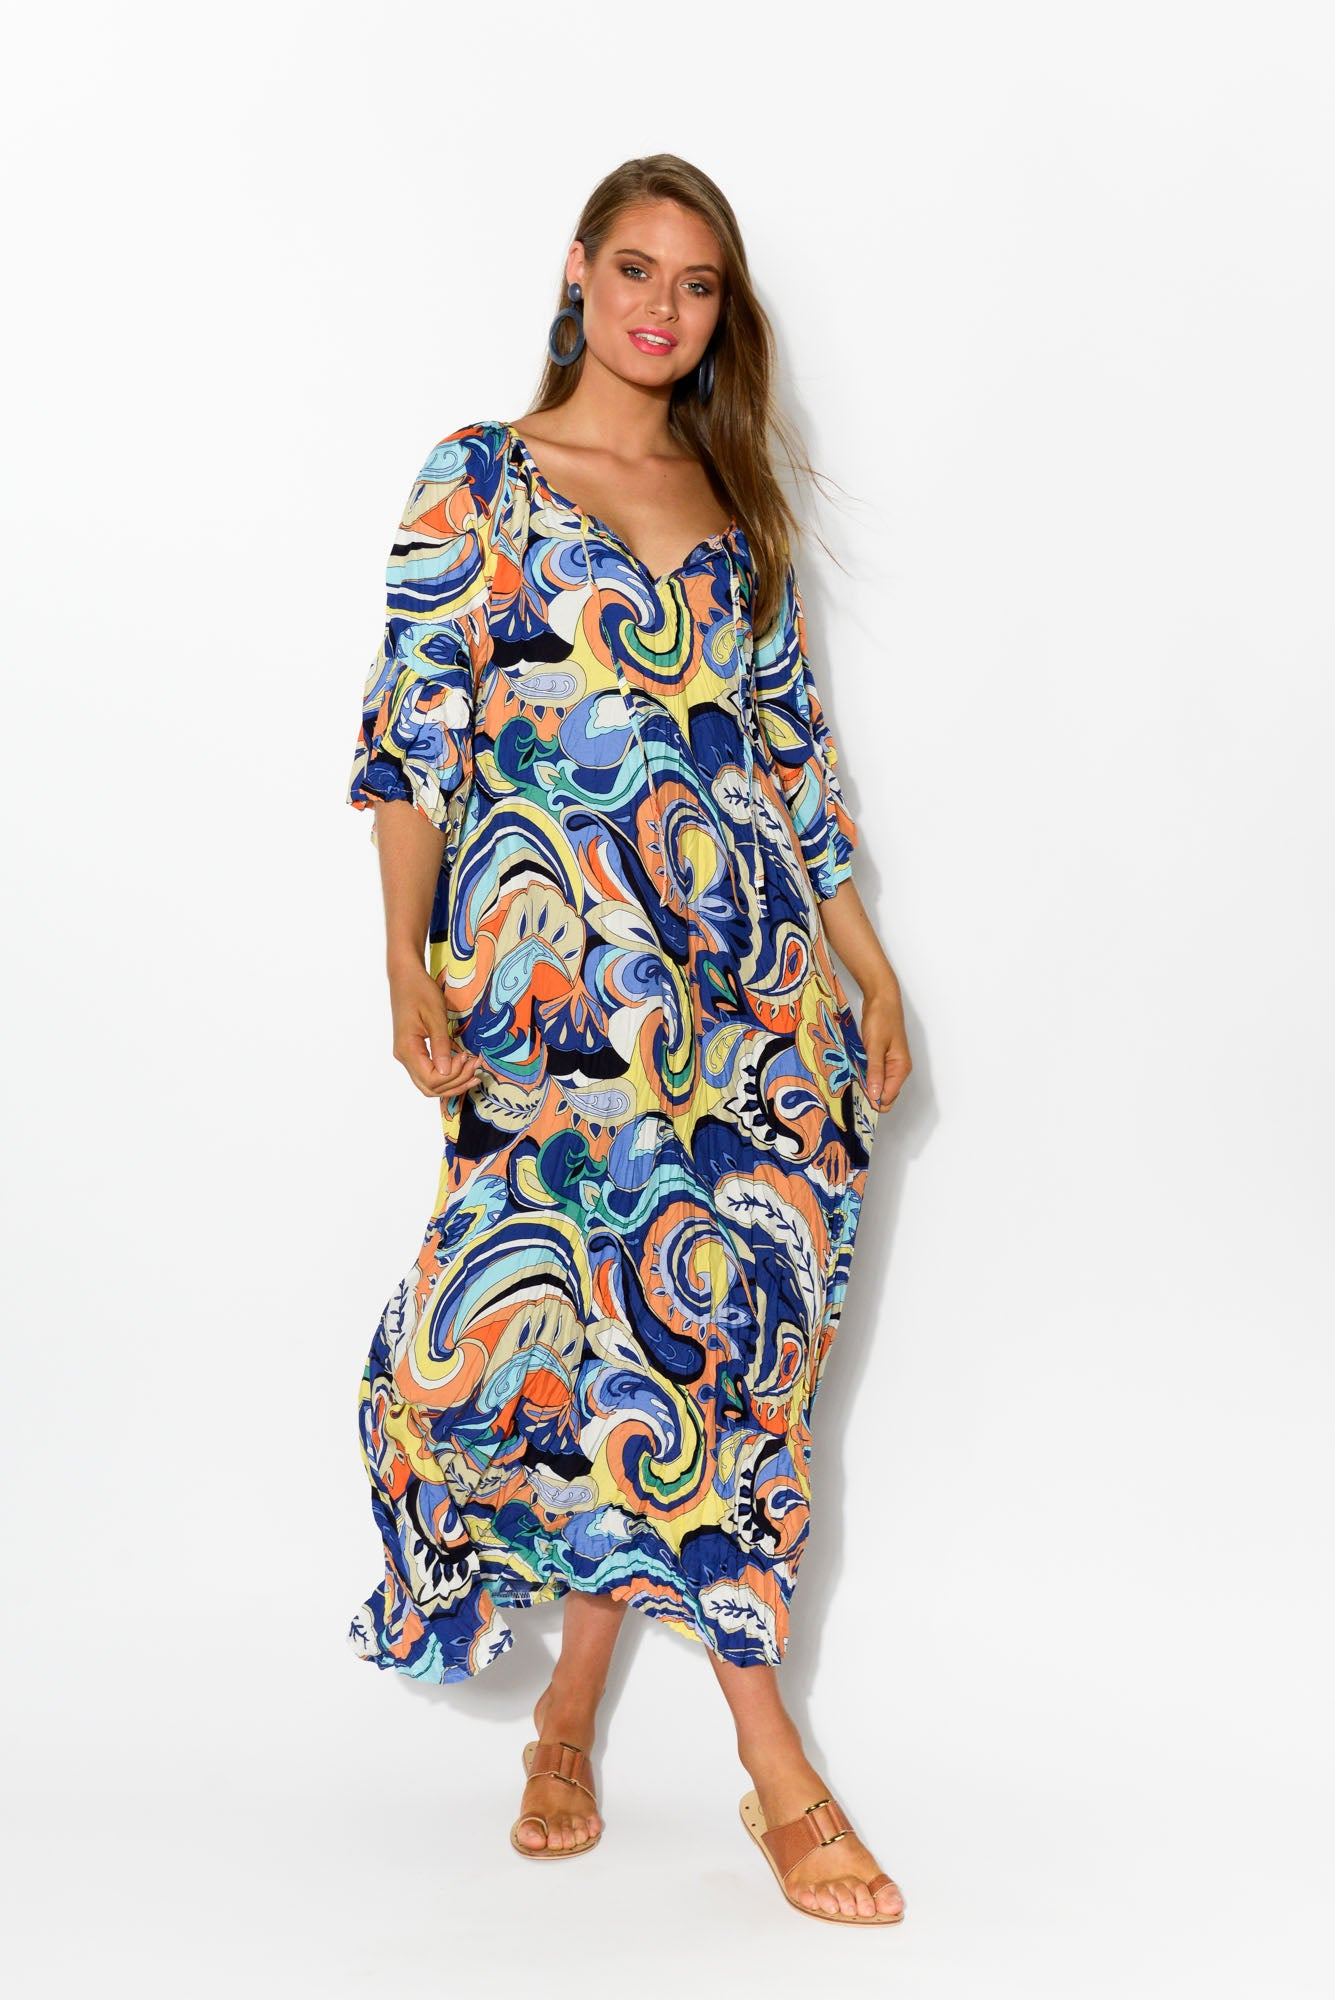 Dominique Carnival Crinkle Maxi Dress - Blue Bungalow